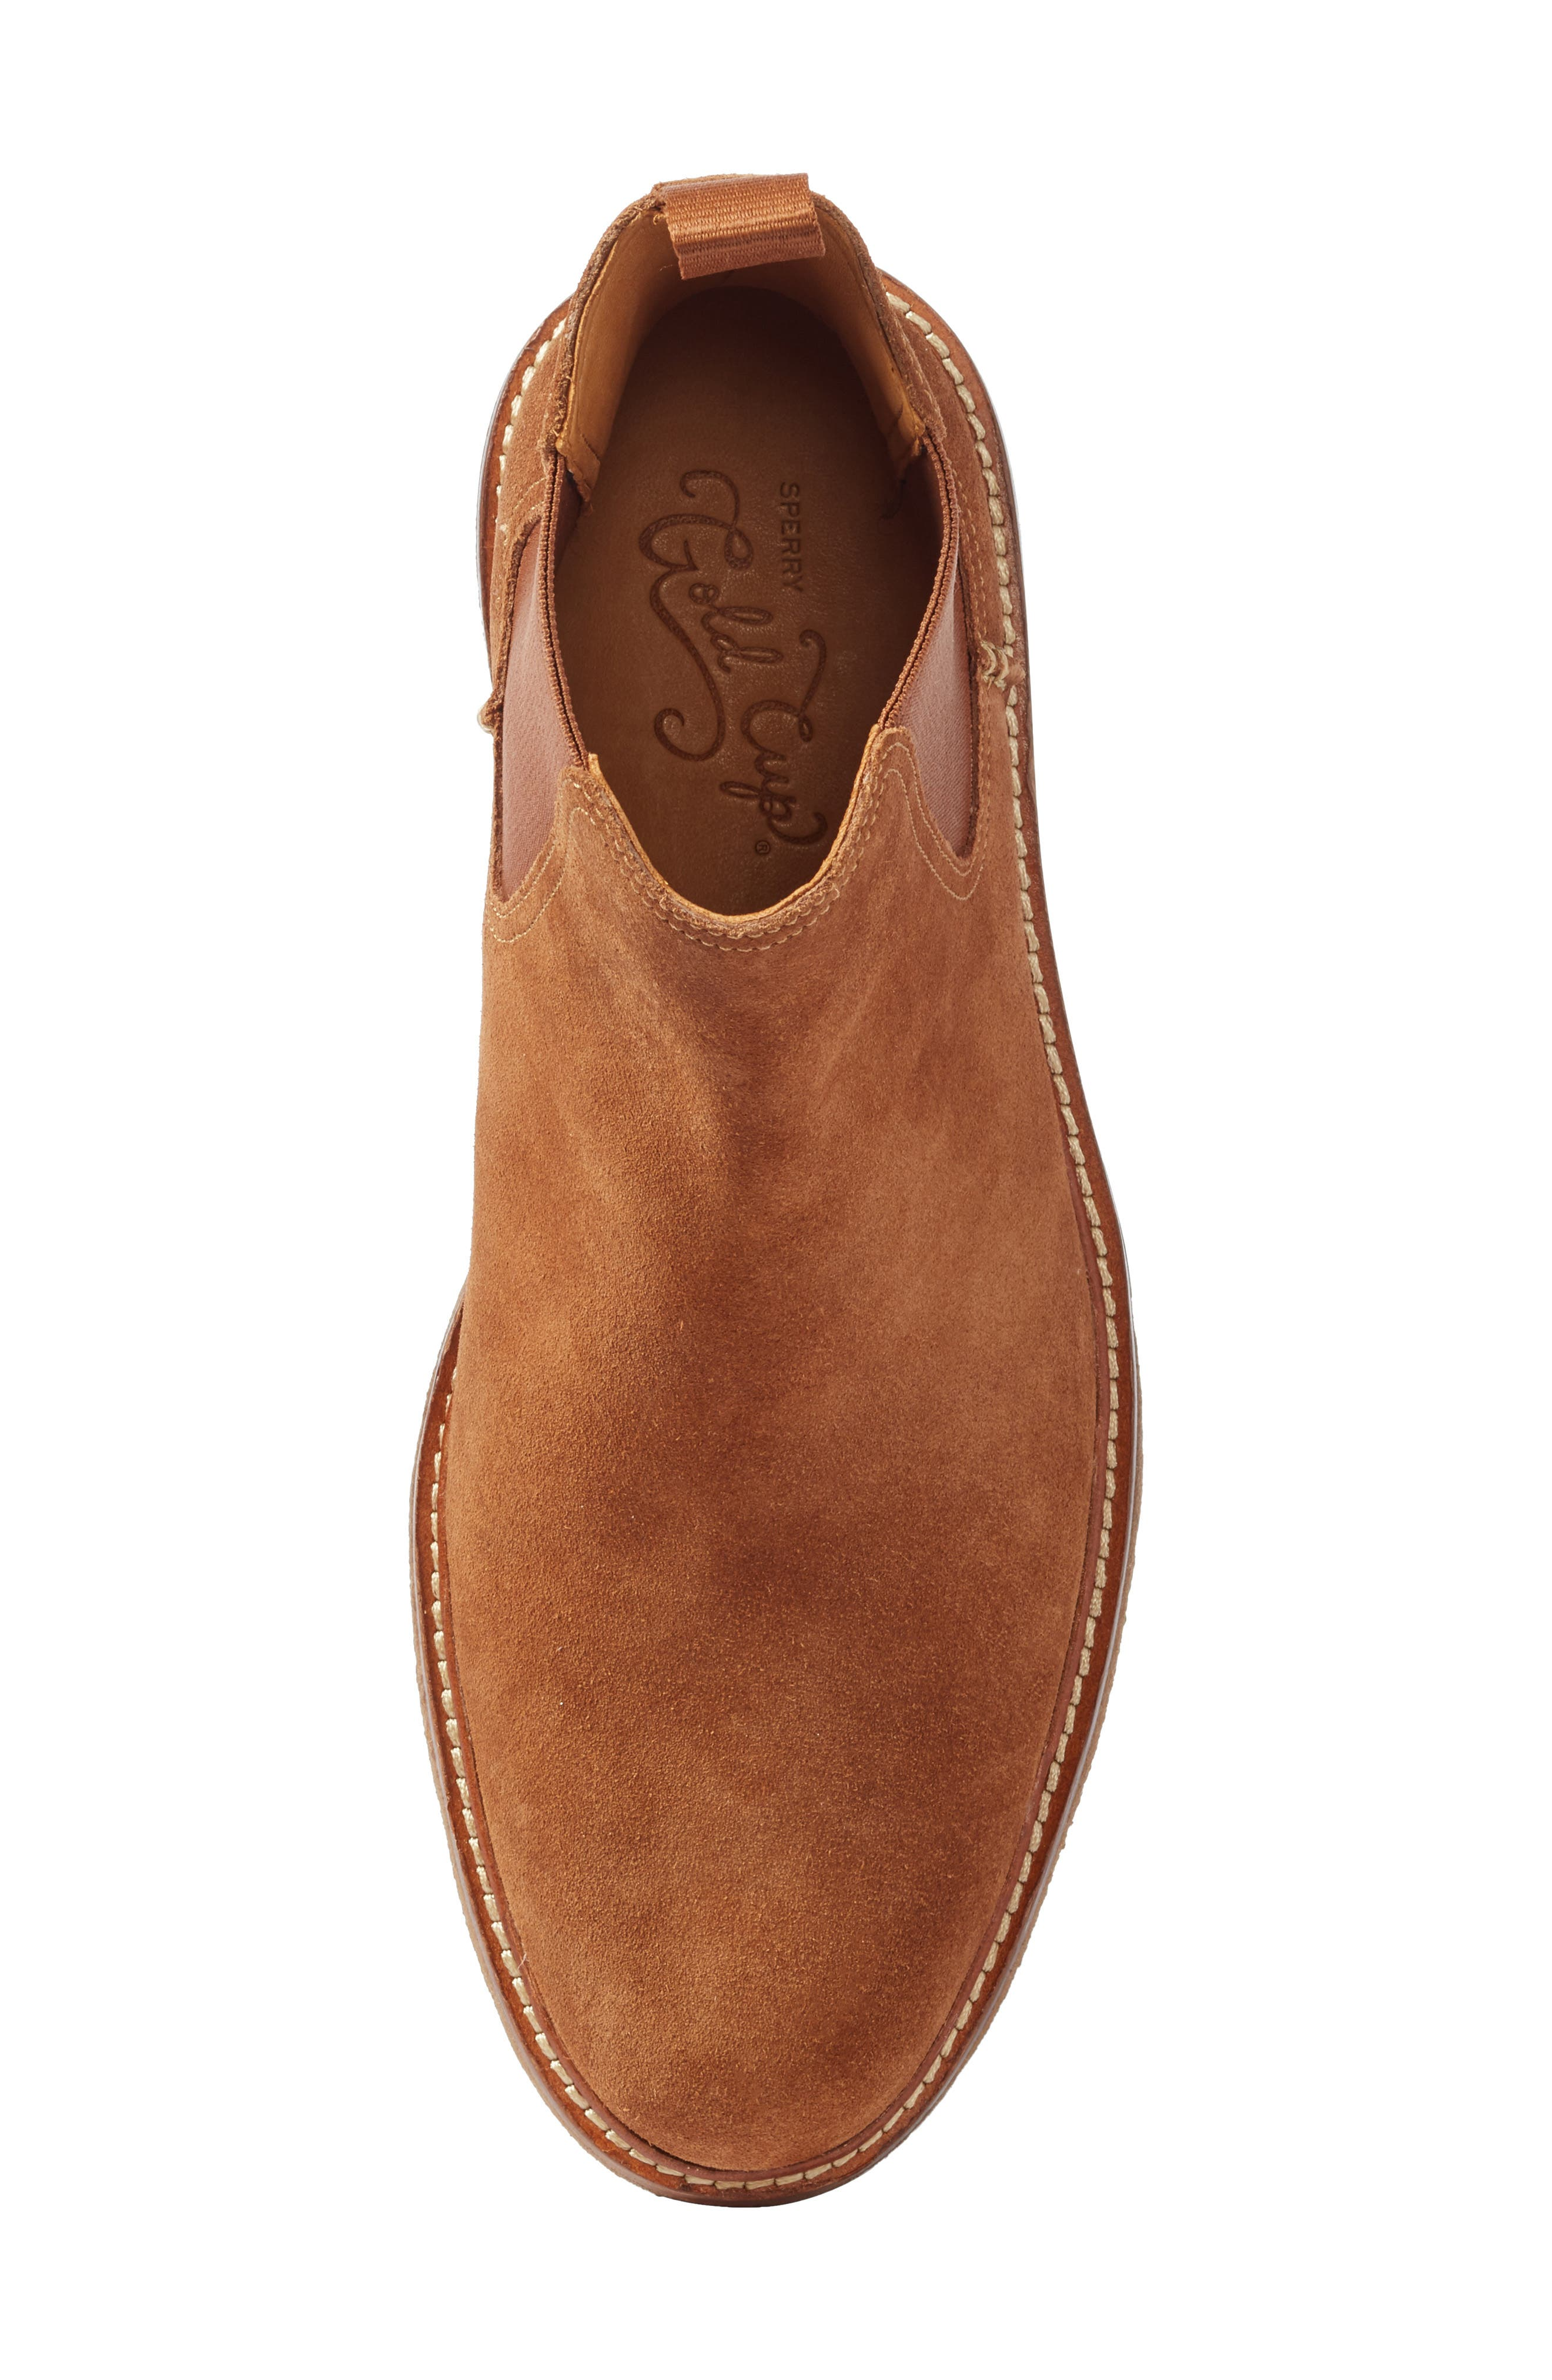 Leather Chelsea Boot,                             Alternate thumbnail 5, color,                             Dark Snuff Leather